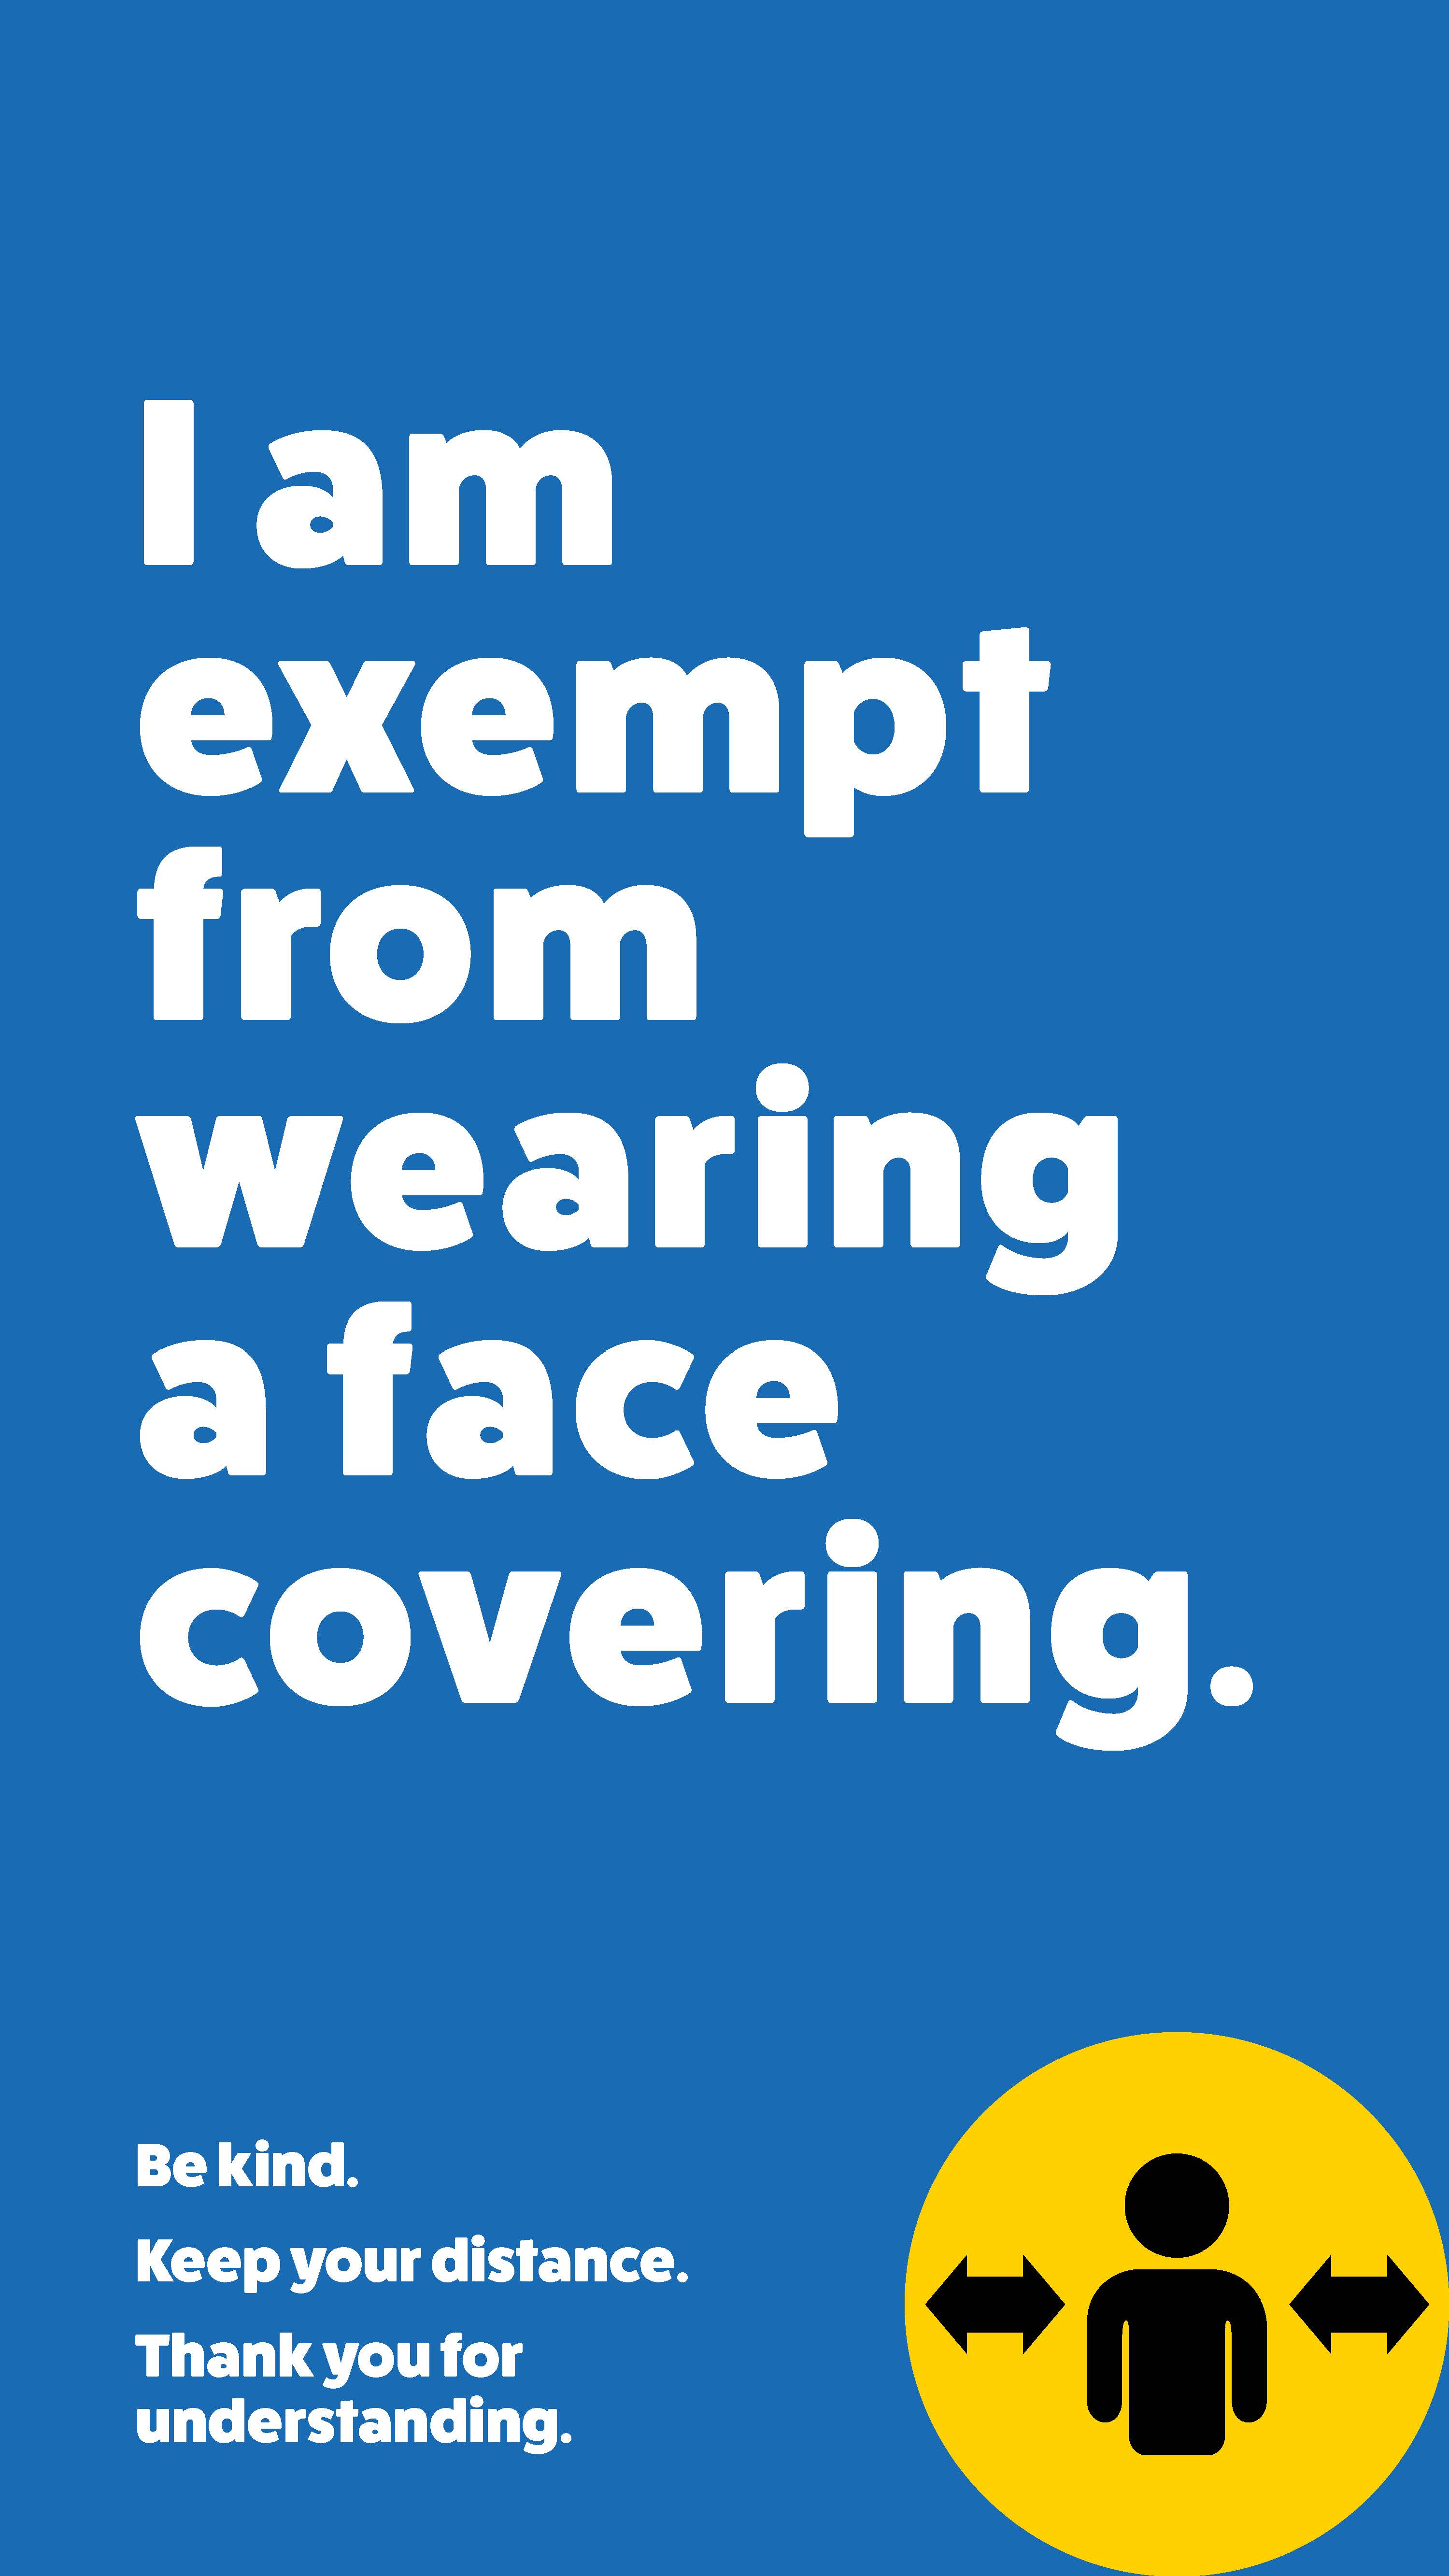 I am exempt from wearing a face covering